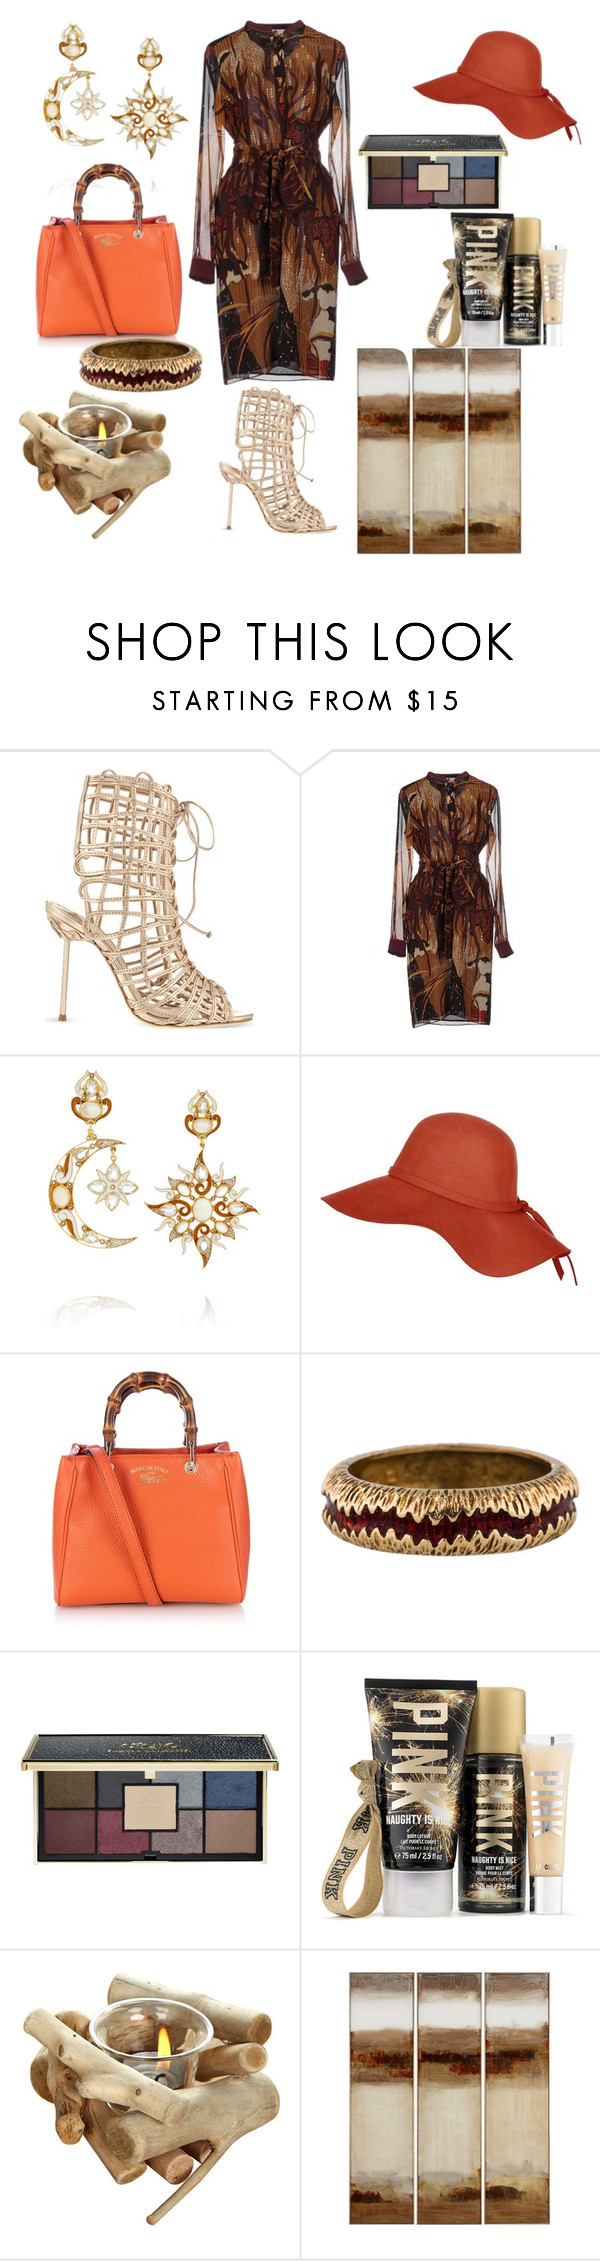 """""""Untitled #545"""" by thestyle-chic ❤ liked on Polyvore featuring Sophia Webster, Gucci, Diego Percossi Papi and Ciaté"""